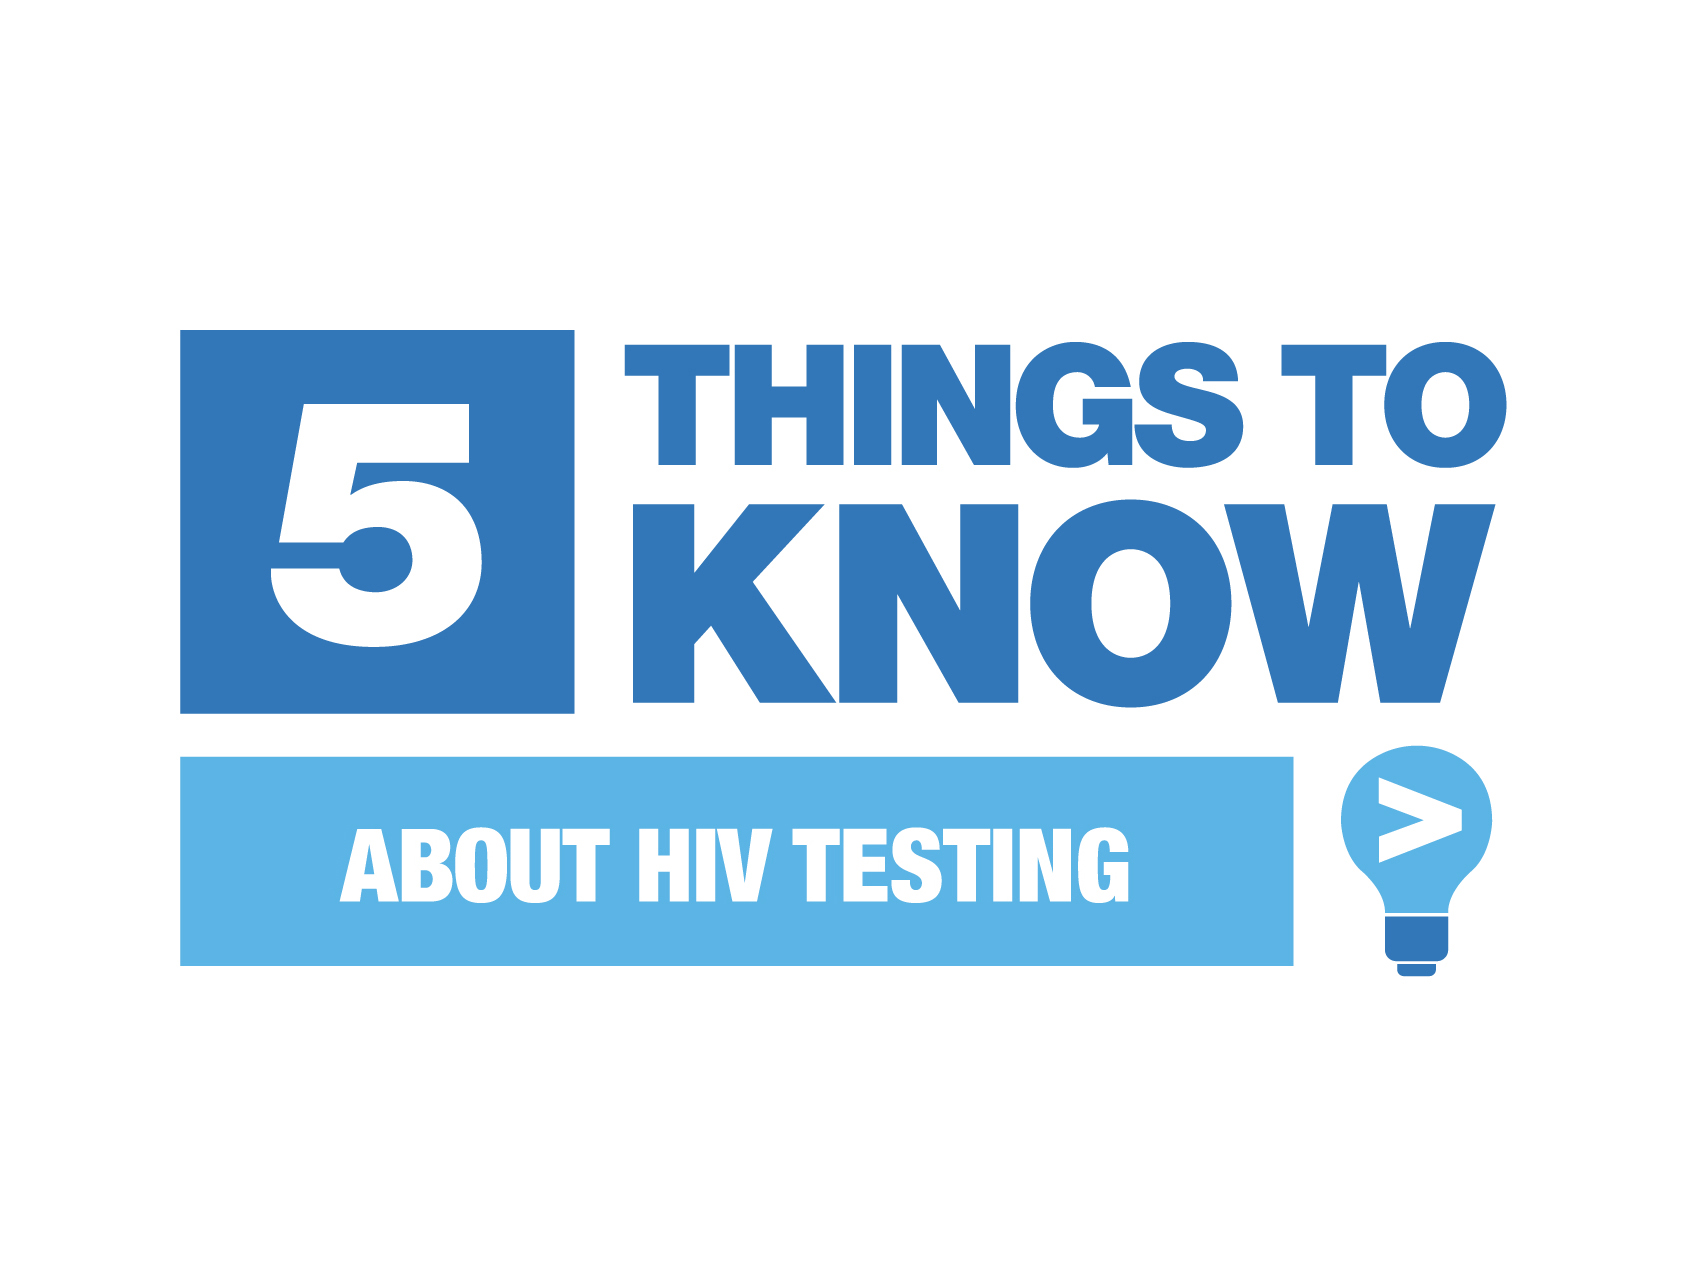 Blue and white Five Things To Know About HIV Testing graphic on white background